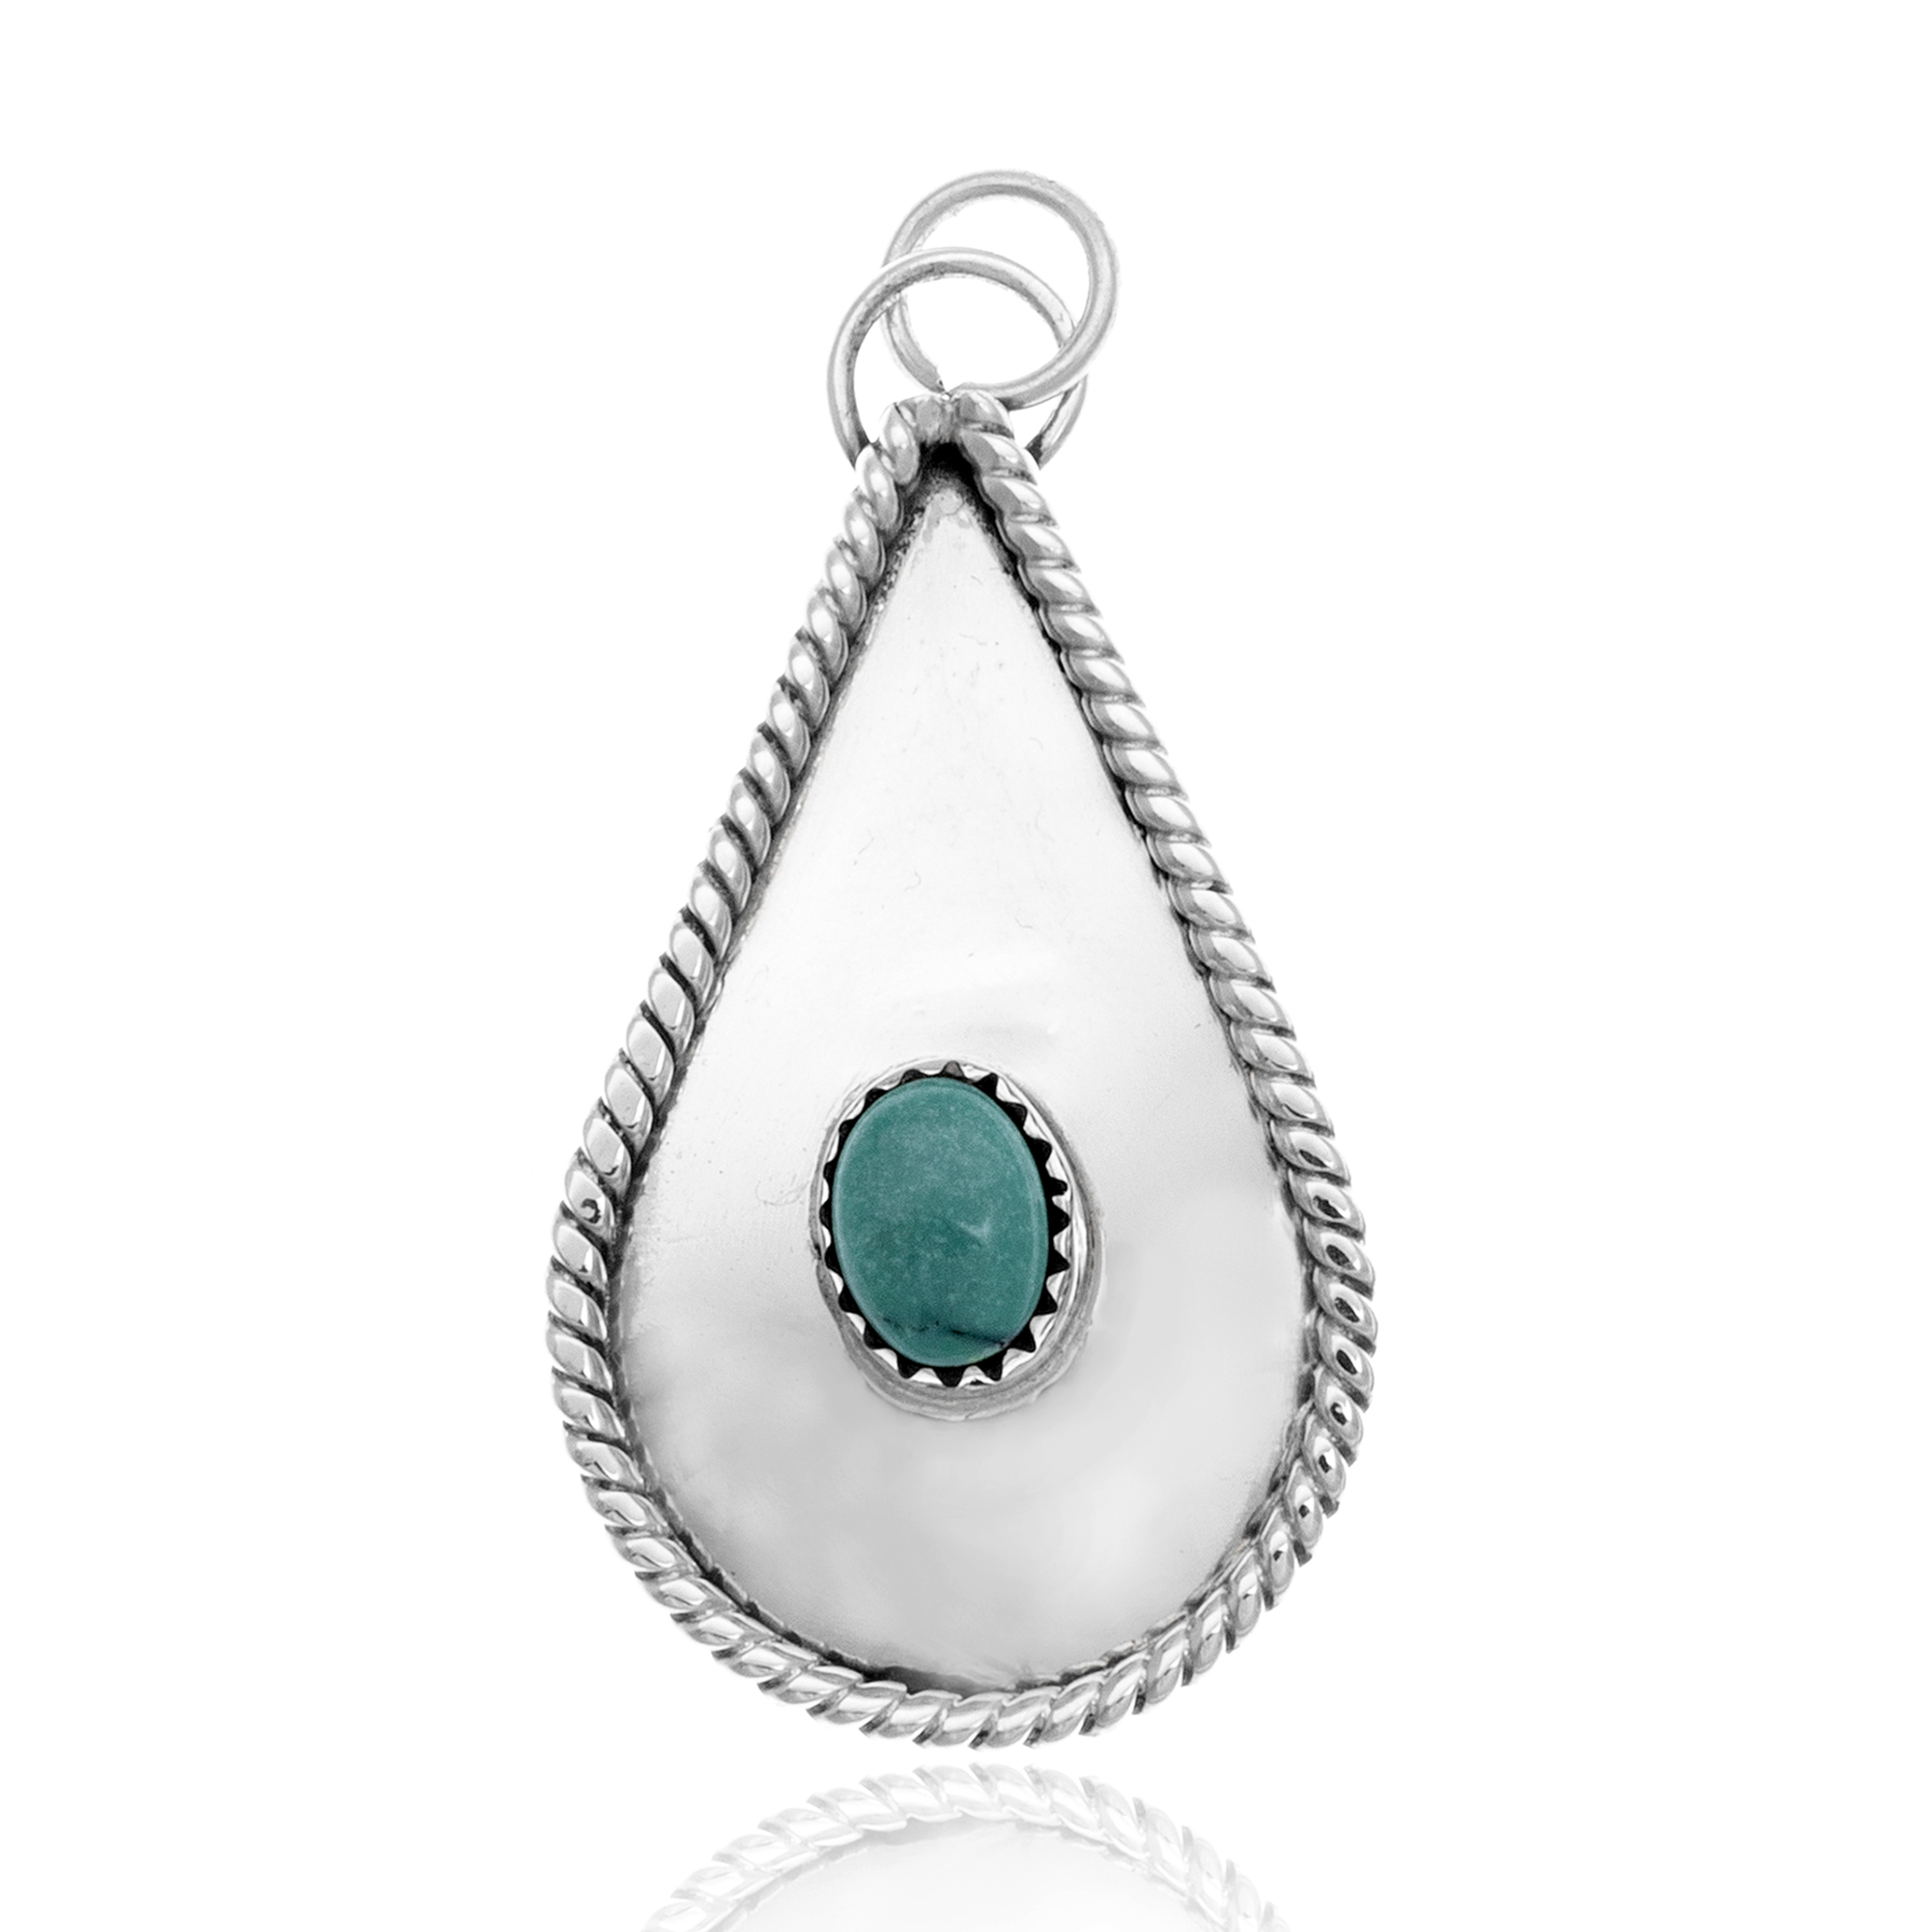 Drop Turquoise .925 Sterling Silver Certified Authentic Navajo Native American Handmade Pendant 24553 Pendants NB181211210602 24553 (by LomaSiiva)